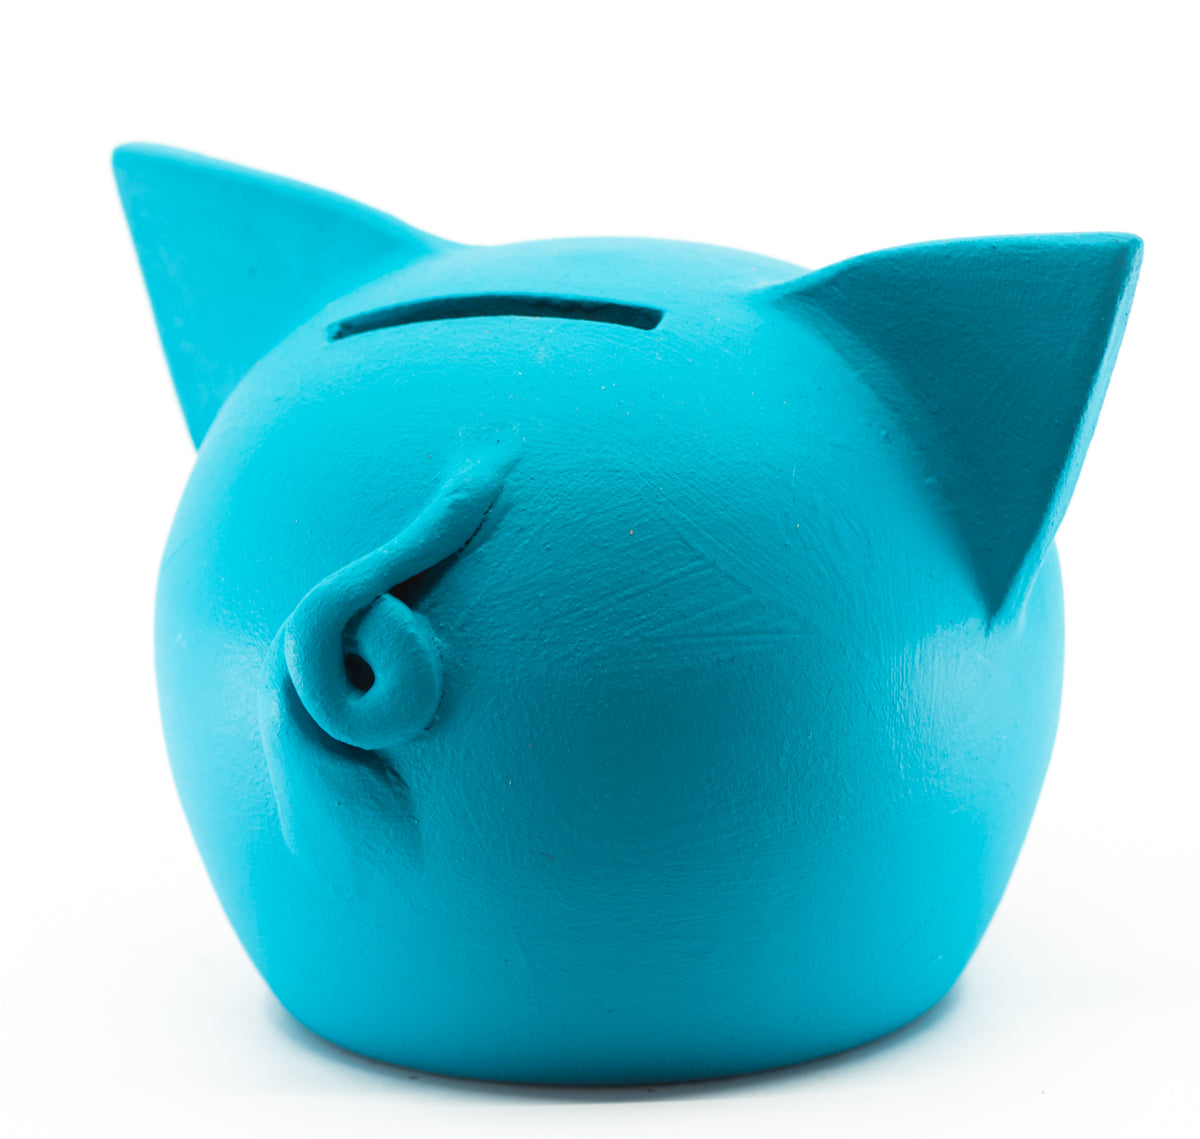 Chalk Collection Small Blue Piggy Bank For Kids & Adults | Handmade Clay